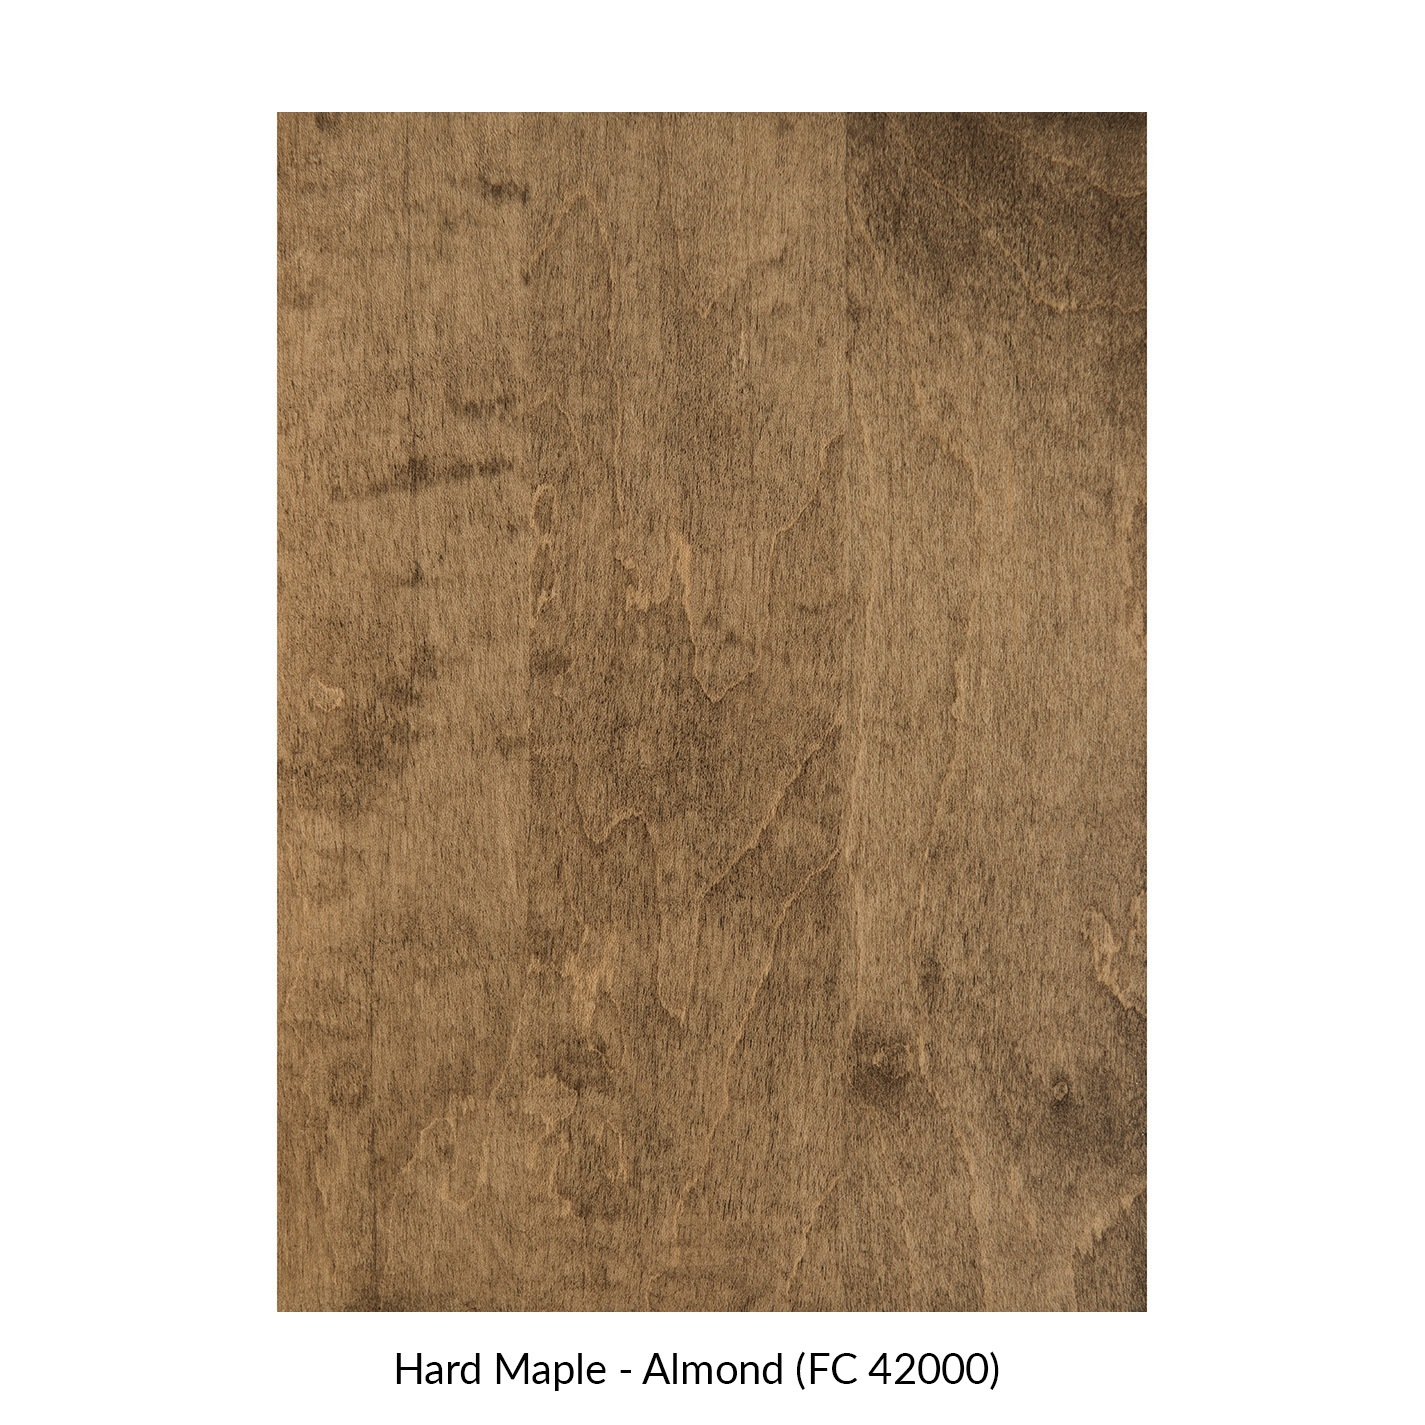 spectrum-hard-maple-almond-fc-42000.jpg